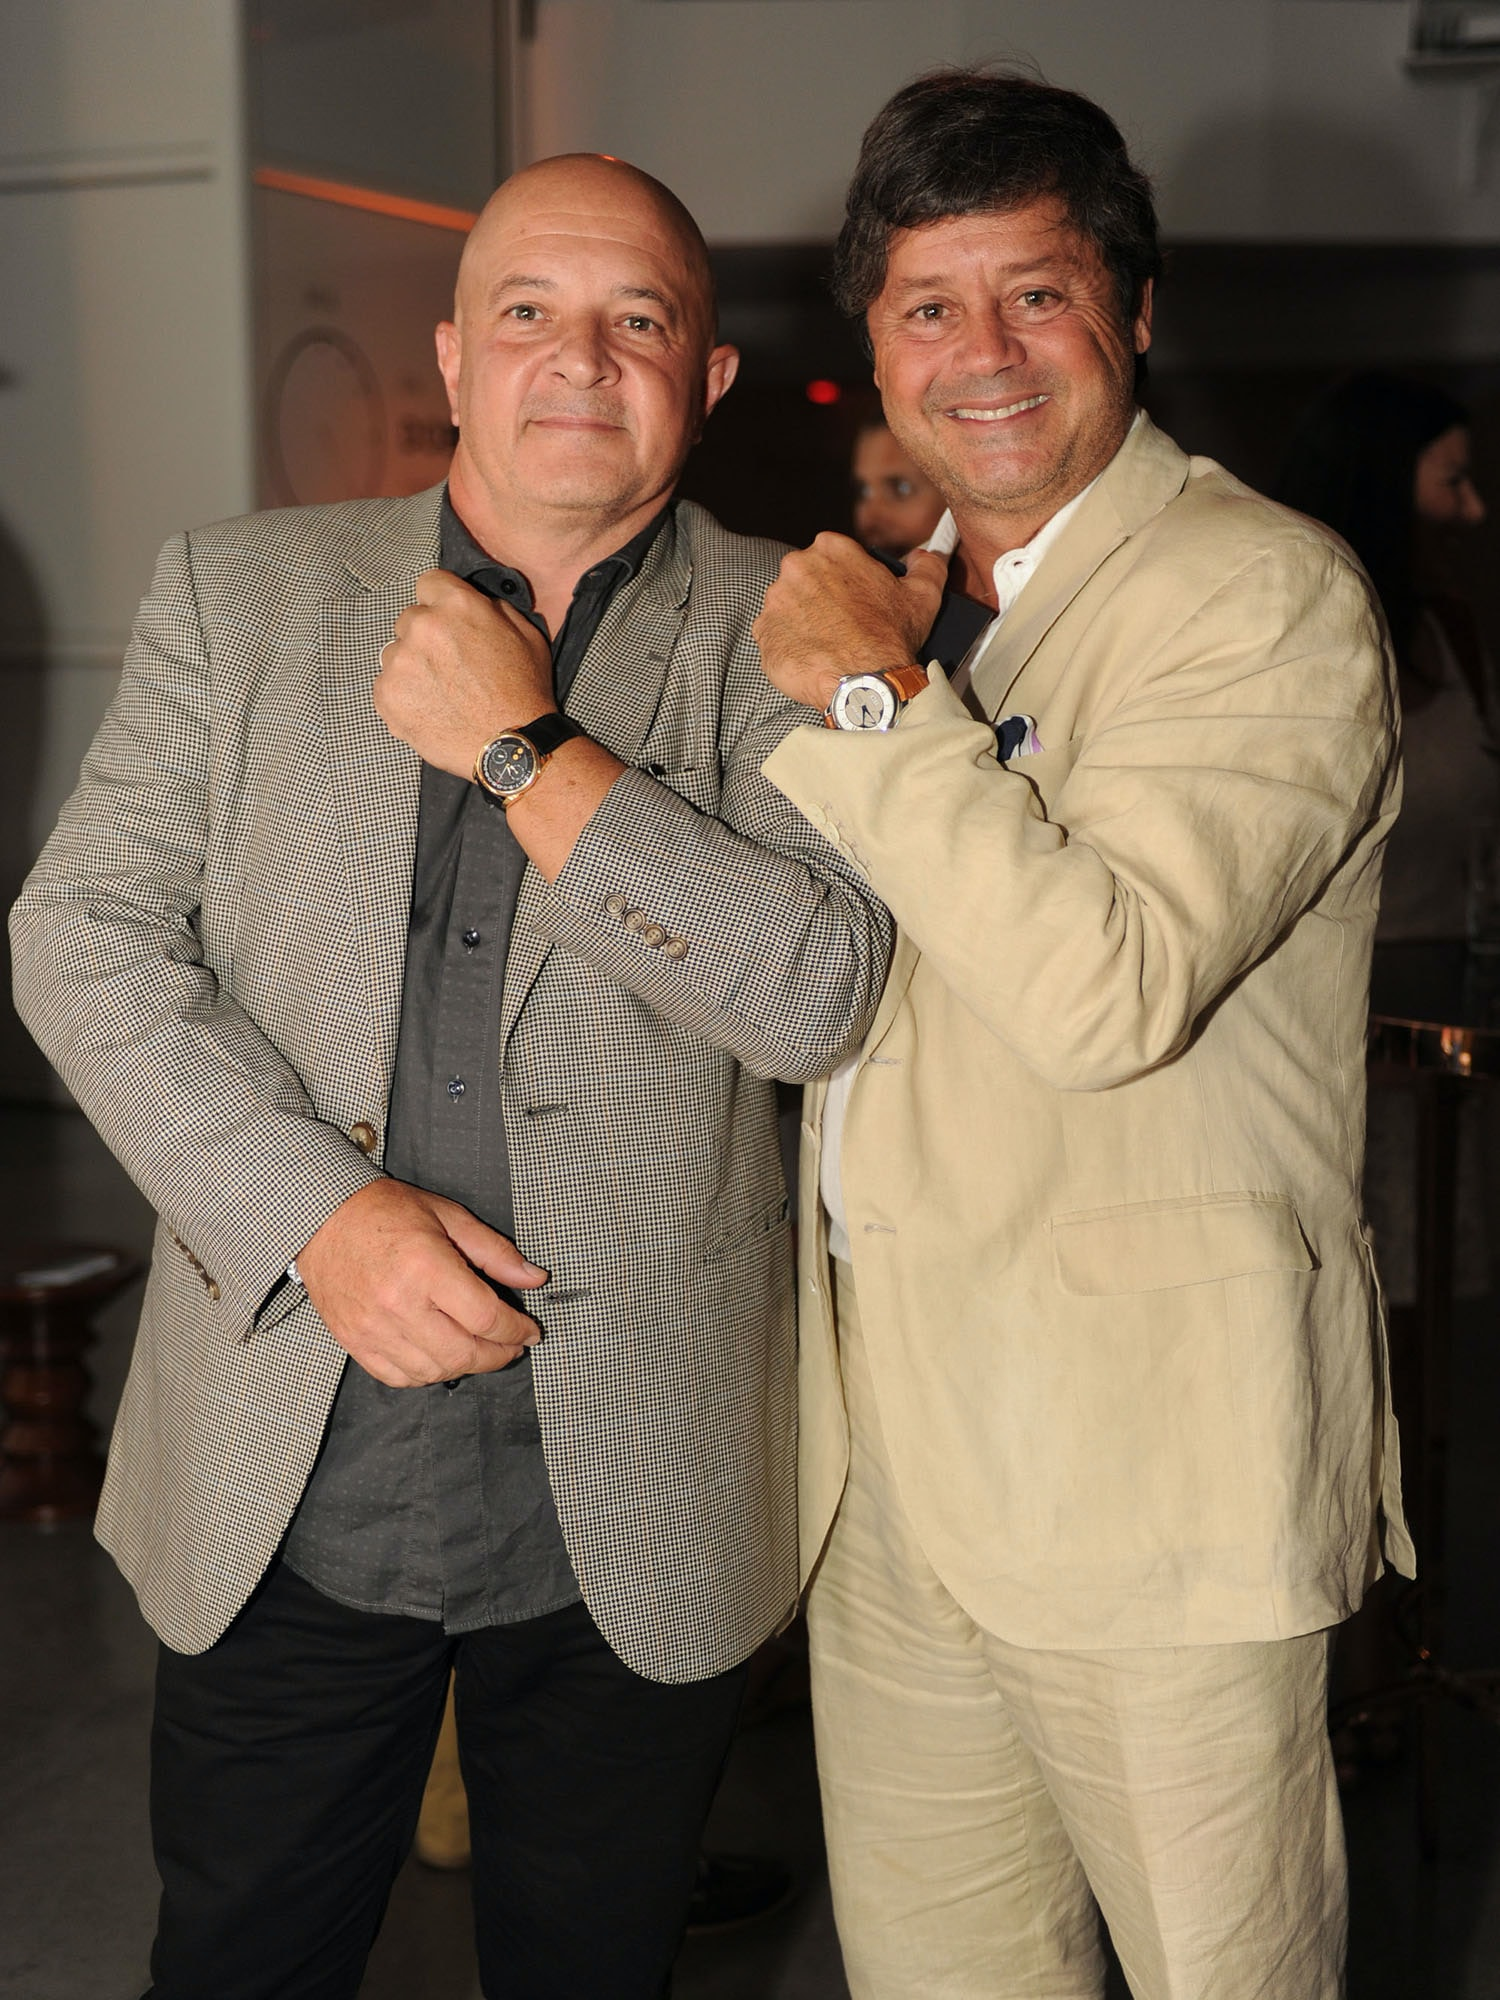 Photo Report: The Dobel x HODINKEE Events In New York And Miami – And An Invitation To Celebrate With Us In LA, Wednesday Night! Photo Report: The Dobel x HODINKEE Events In New York And Miami – And An Invitation To Celebrate With Us In LA, Wednesday Night! Thierry Collot  Pierre Halimi Lacharlotte